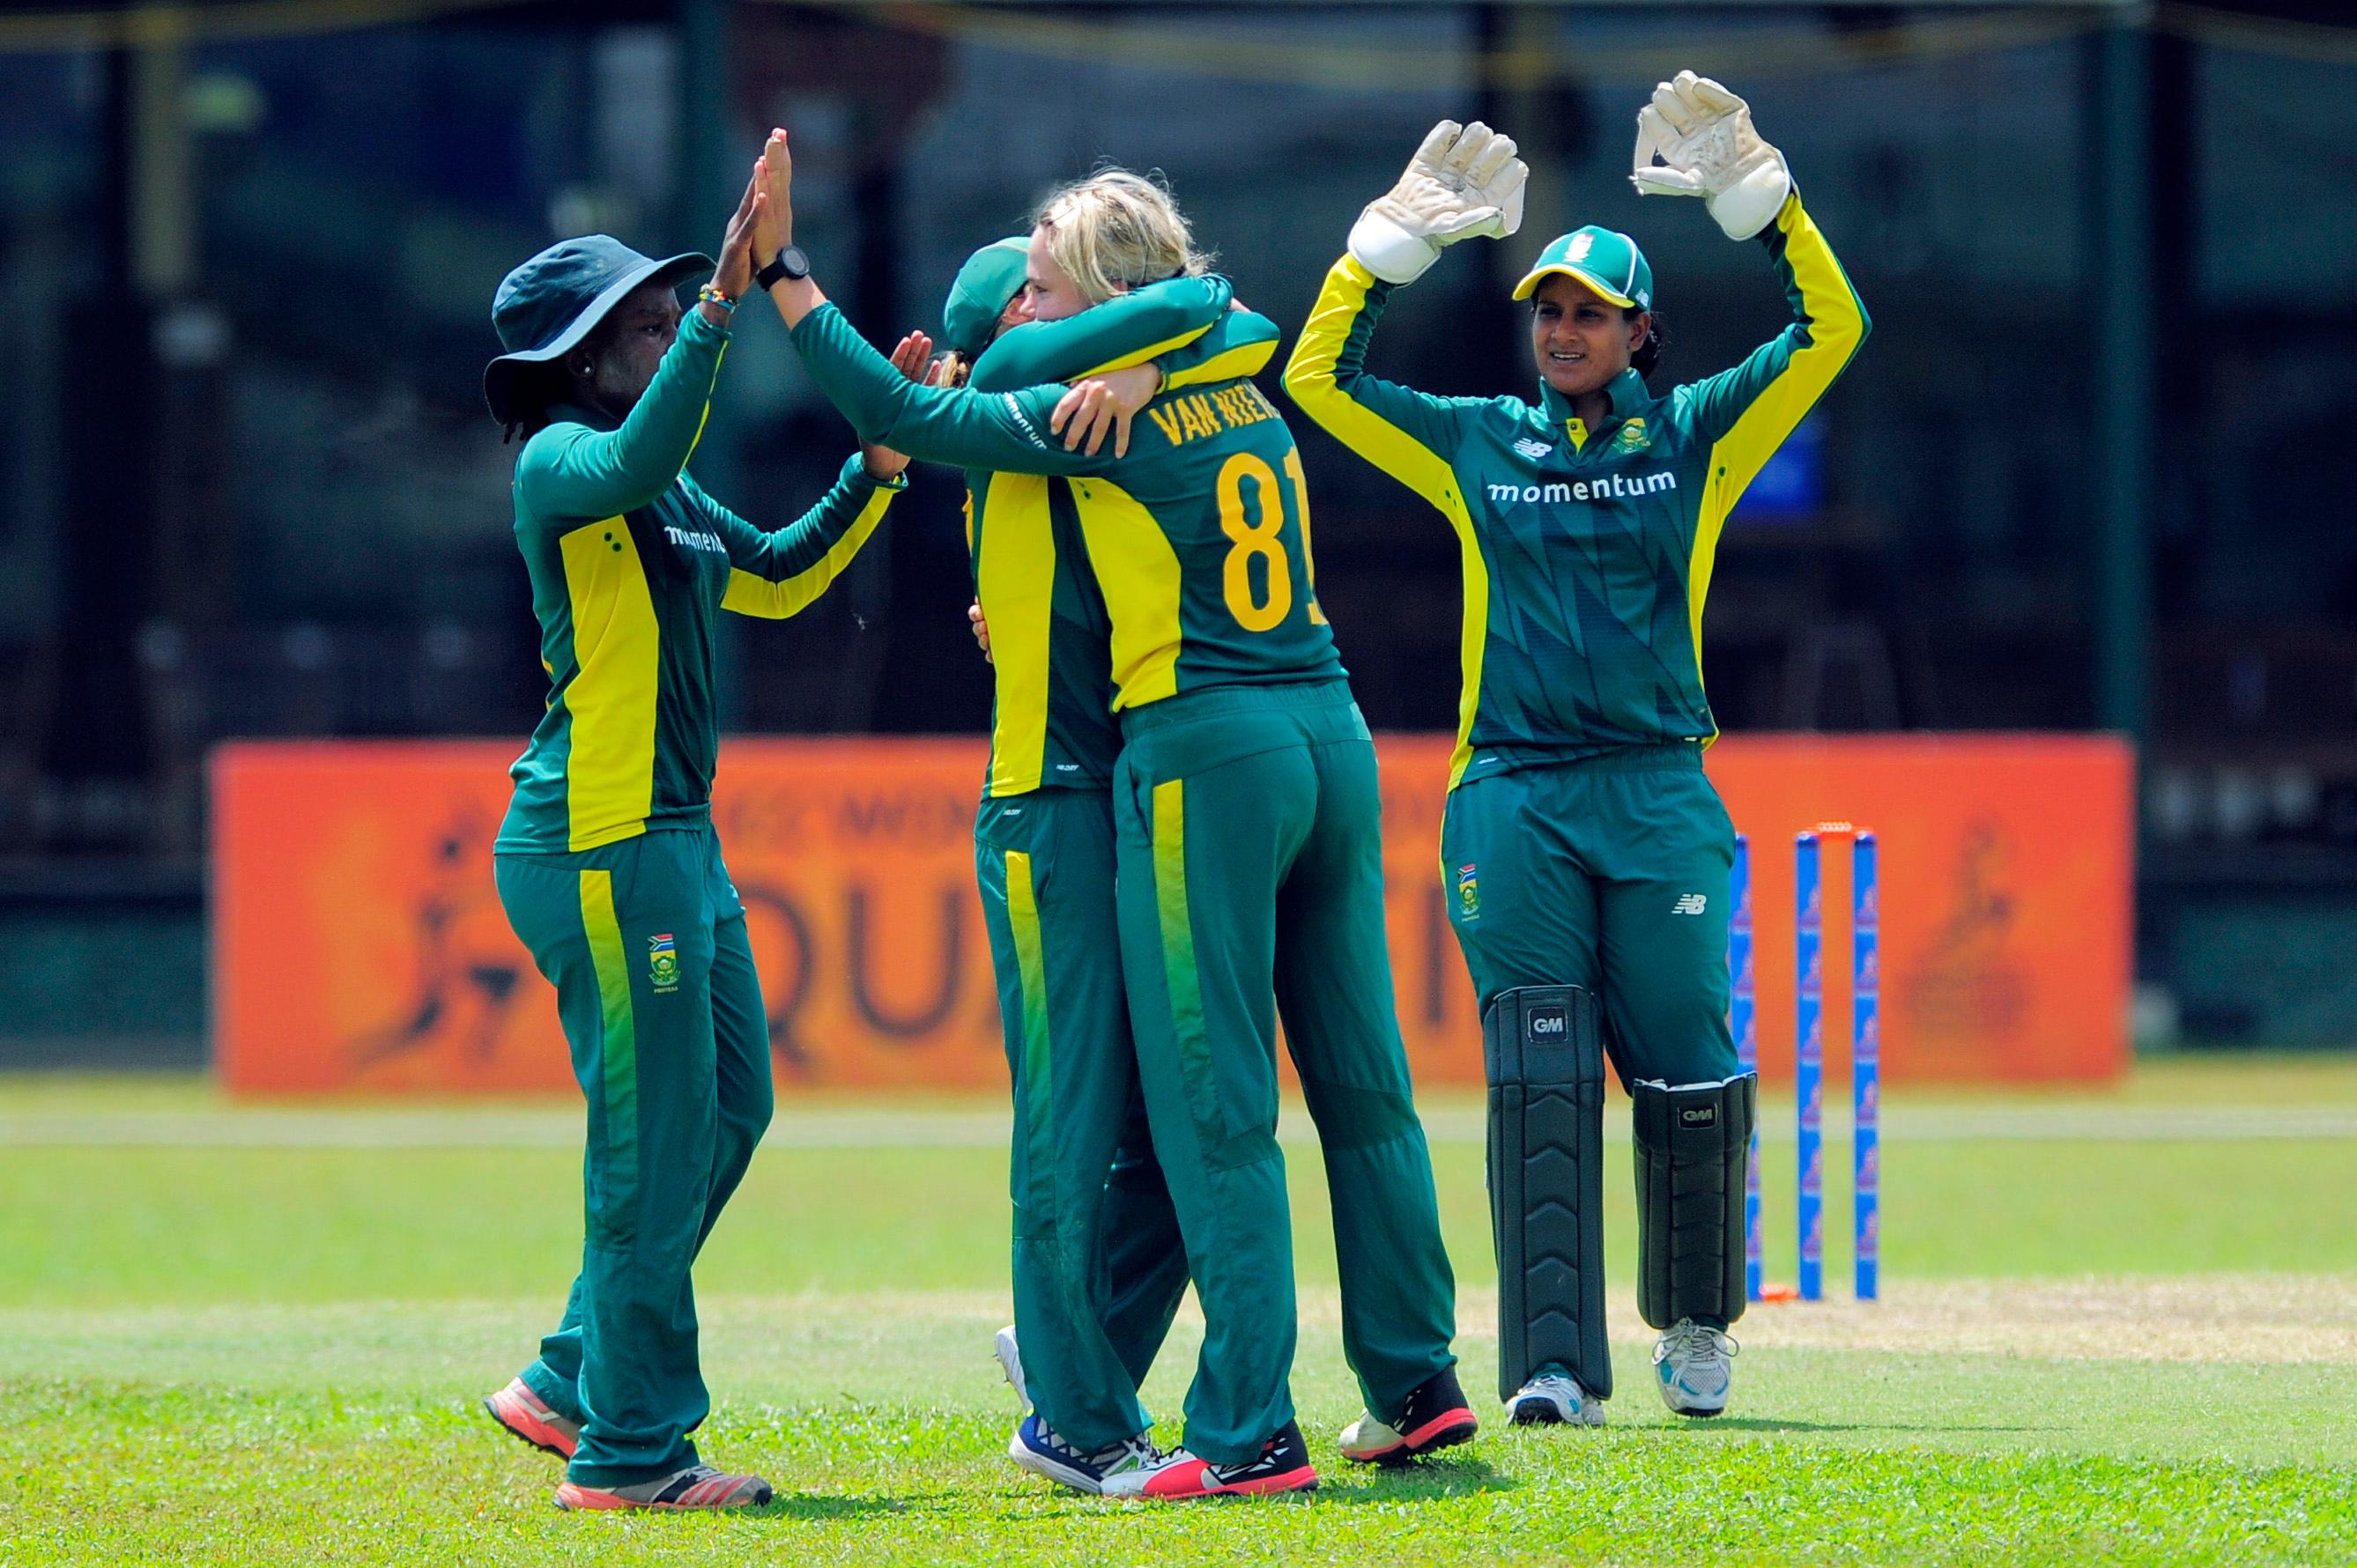 Icc Women S World Cup Qualifier Day 9 Top Moments